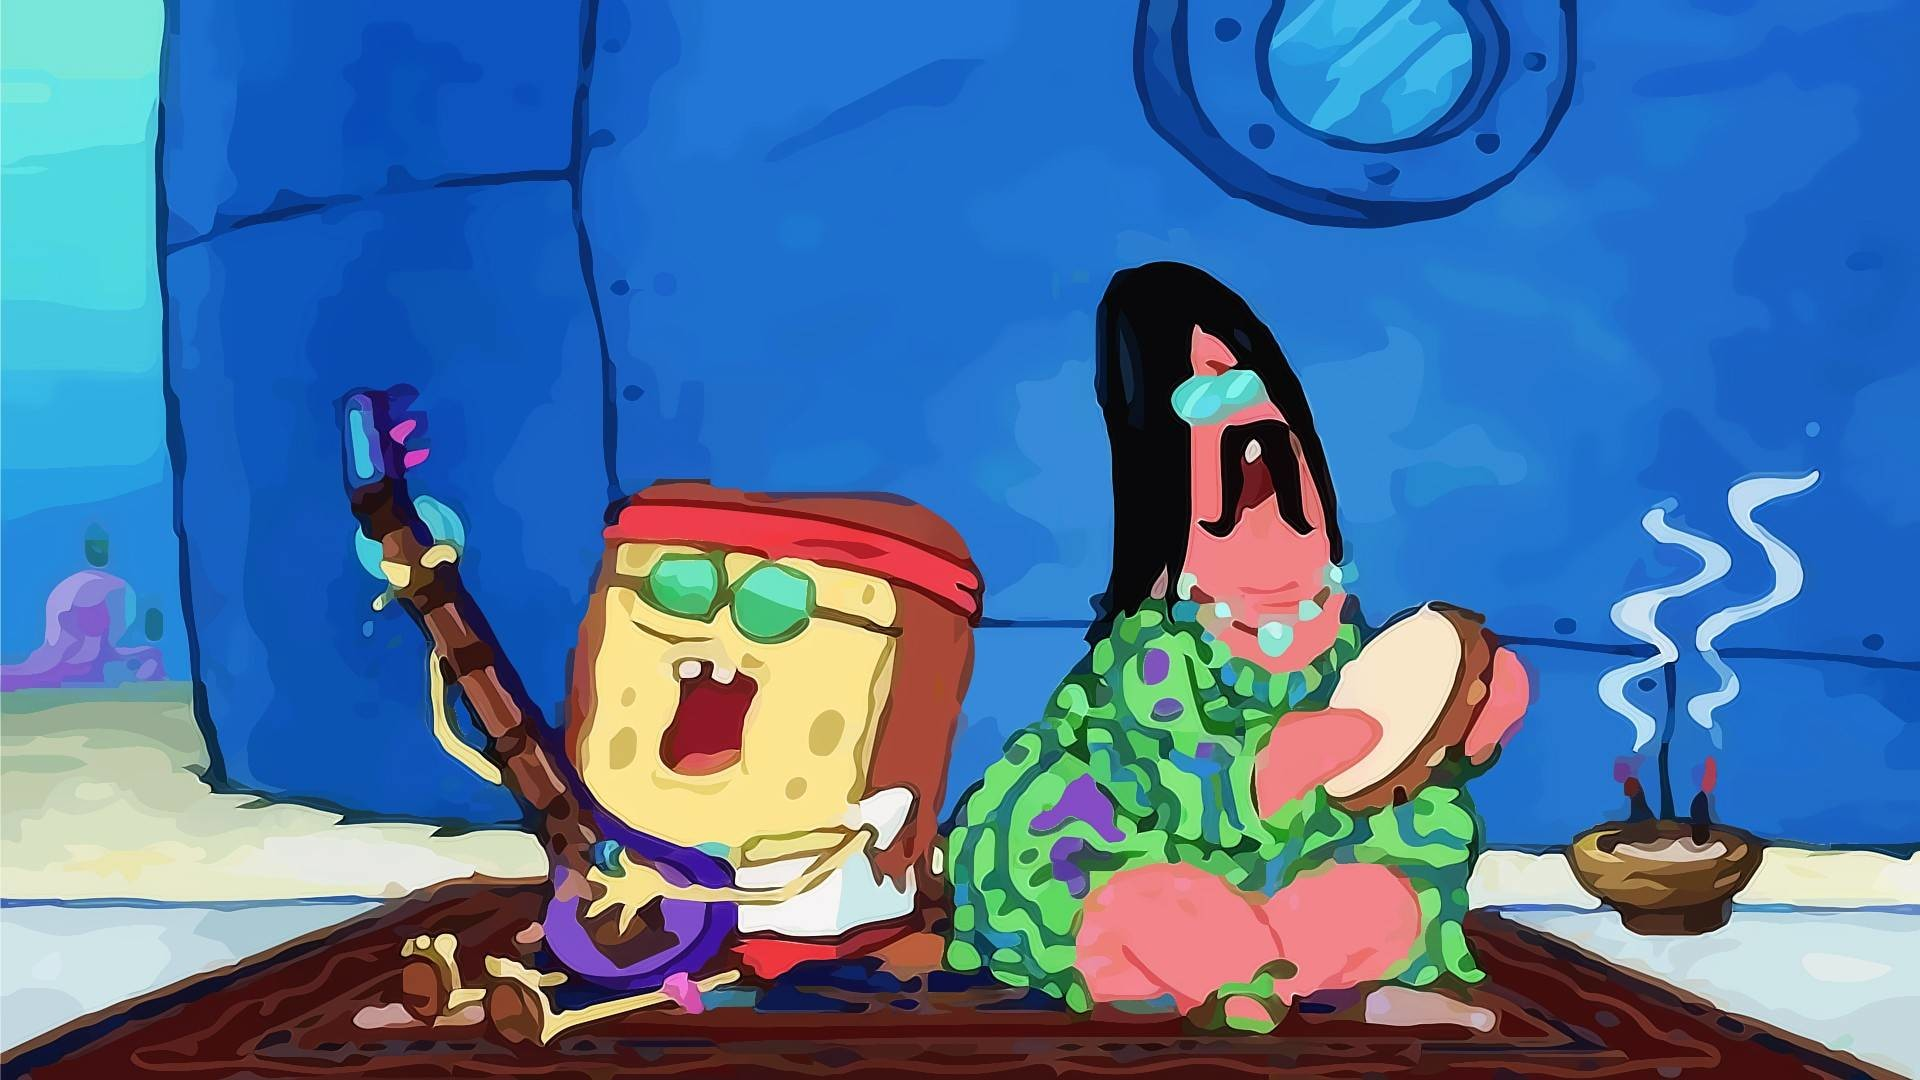 1920x1080 Hd Hippie Spongebob Squarepants Pictures.